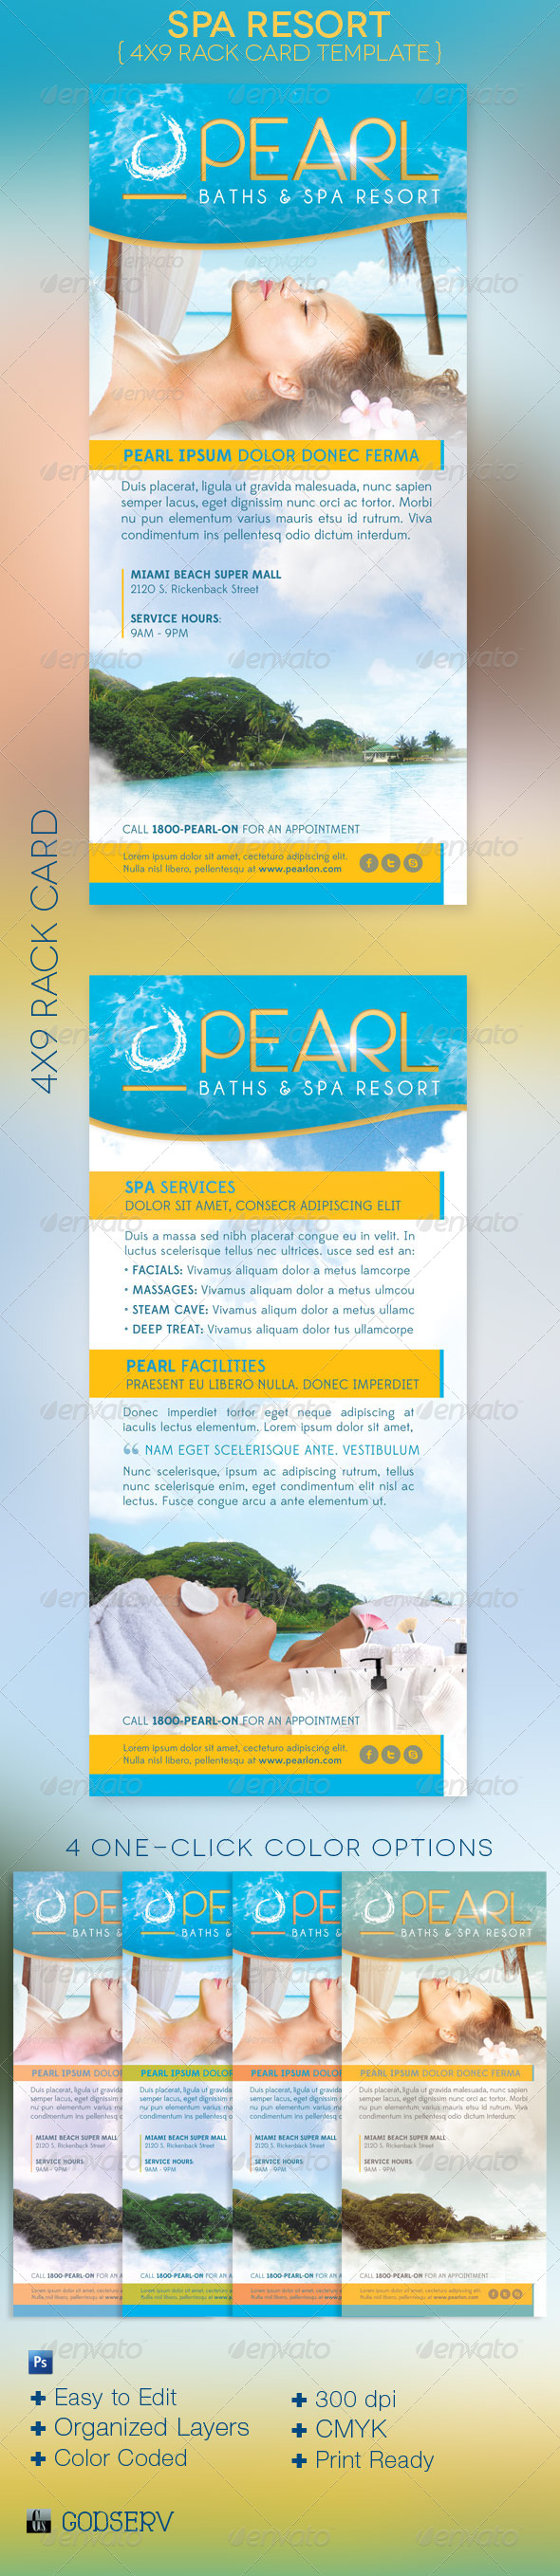 Spa Resort Rack Card Template - Commerce Flyers